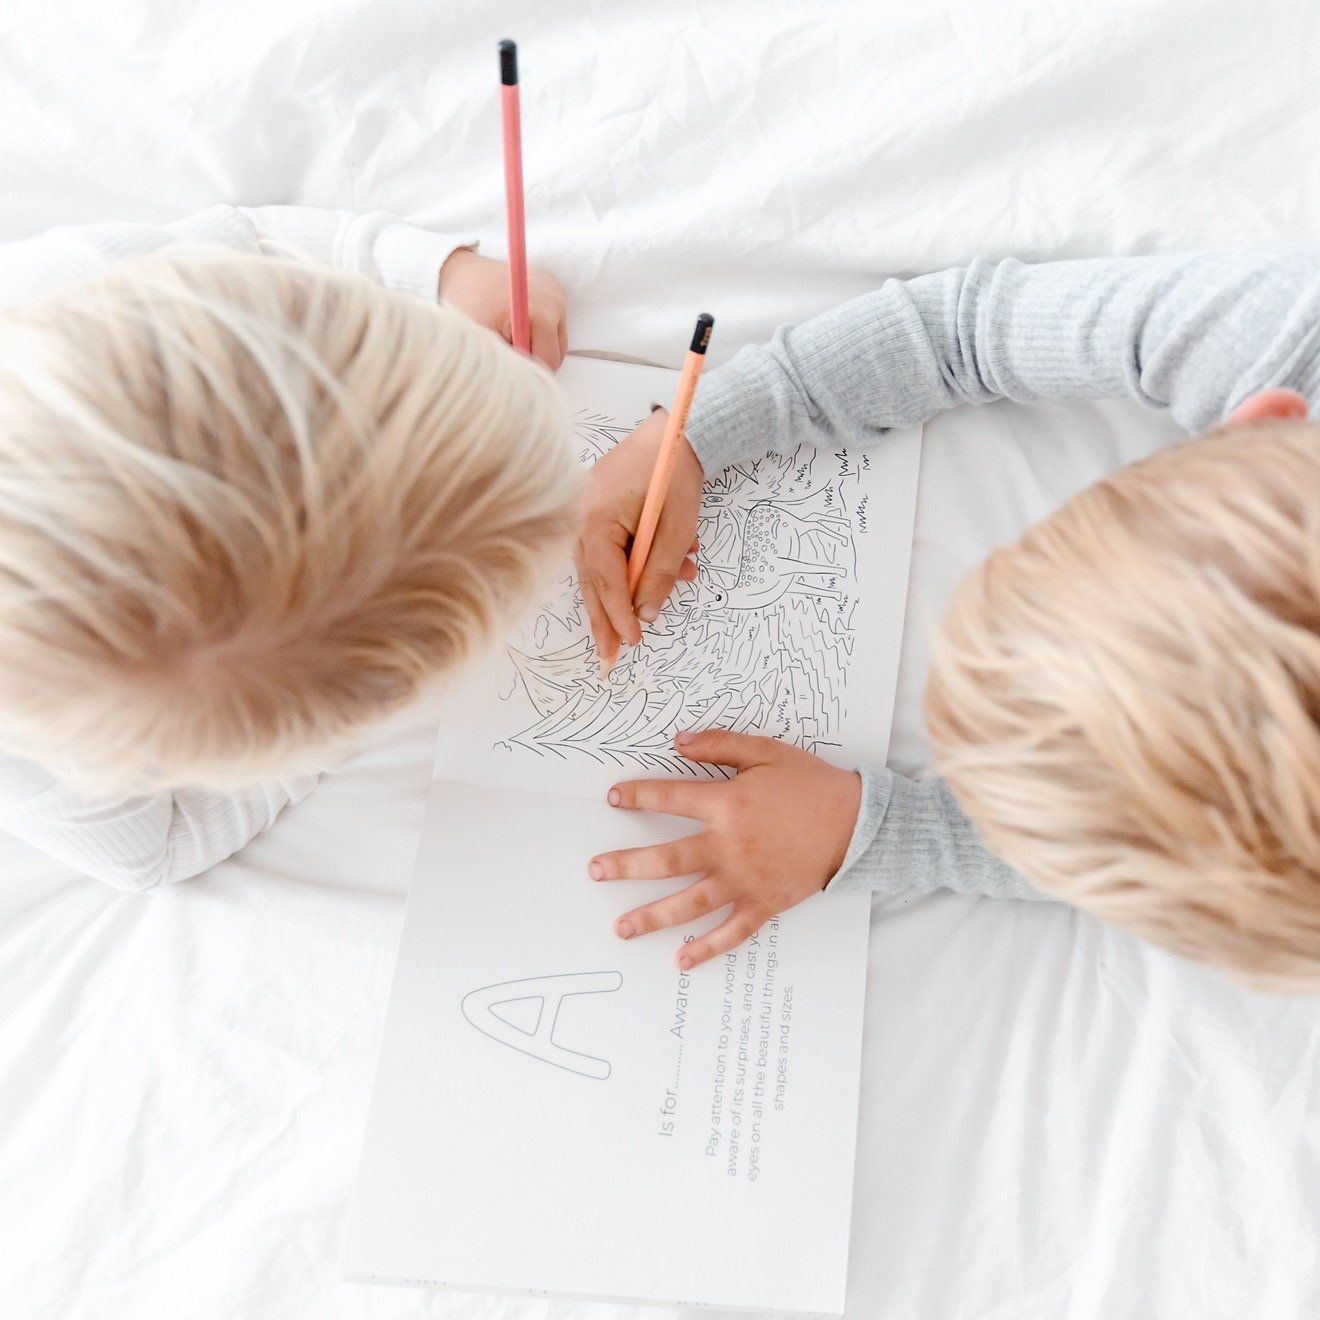 ABC's of Mindfulness Colouring Book